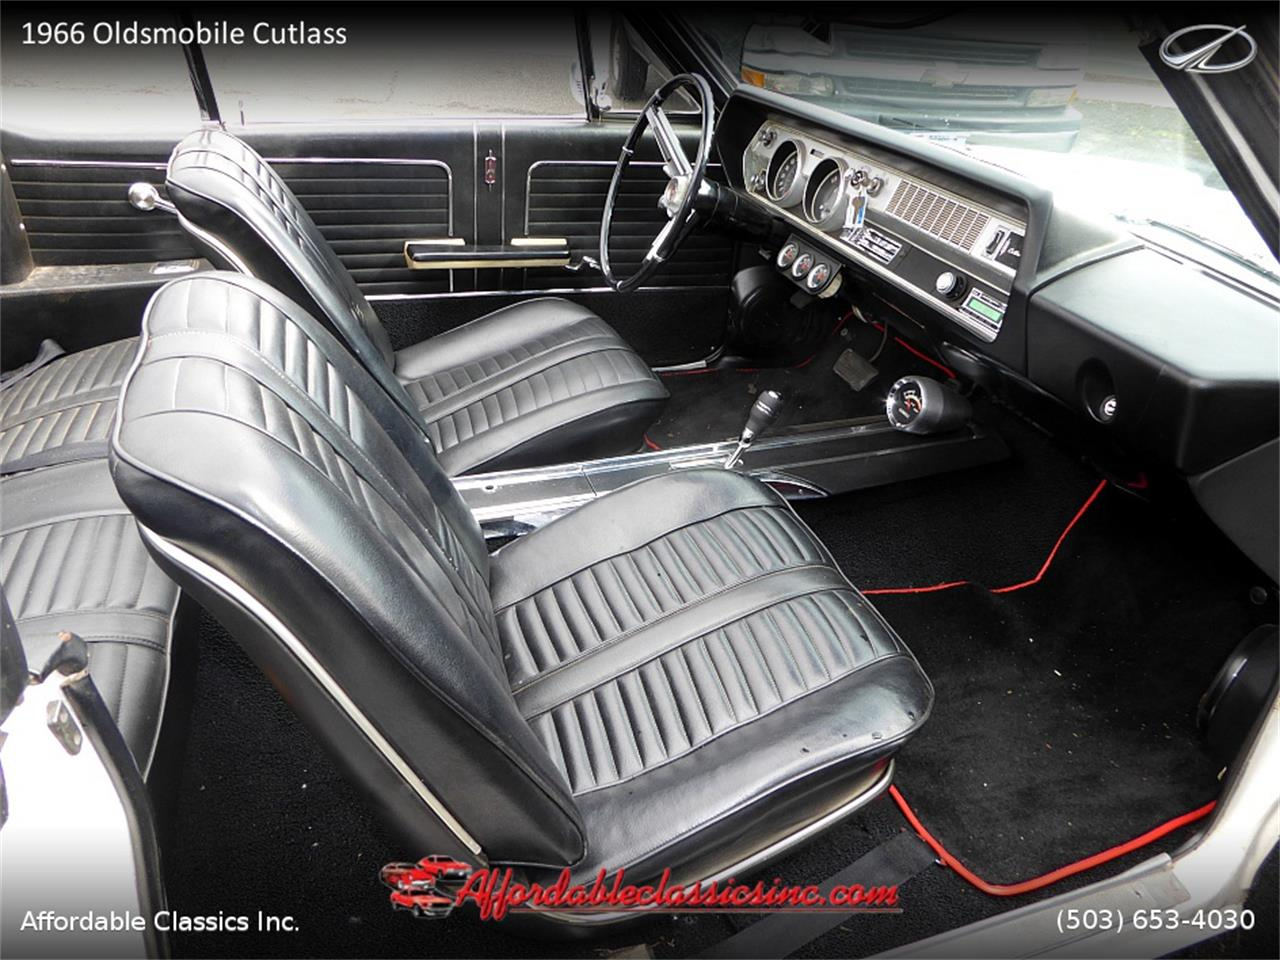 Large Picture of '66 Oldsmobile Cutlass located in Oregon - $25,500.00 - MN4C